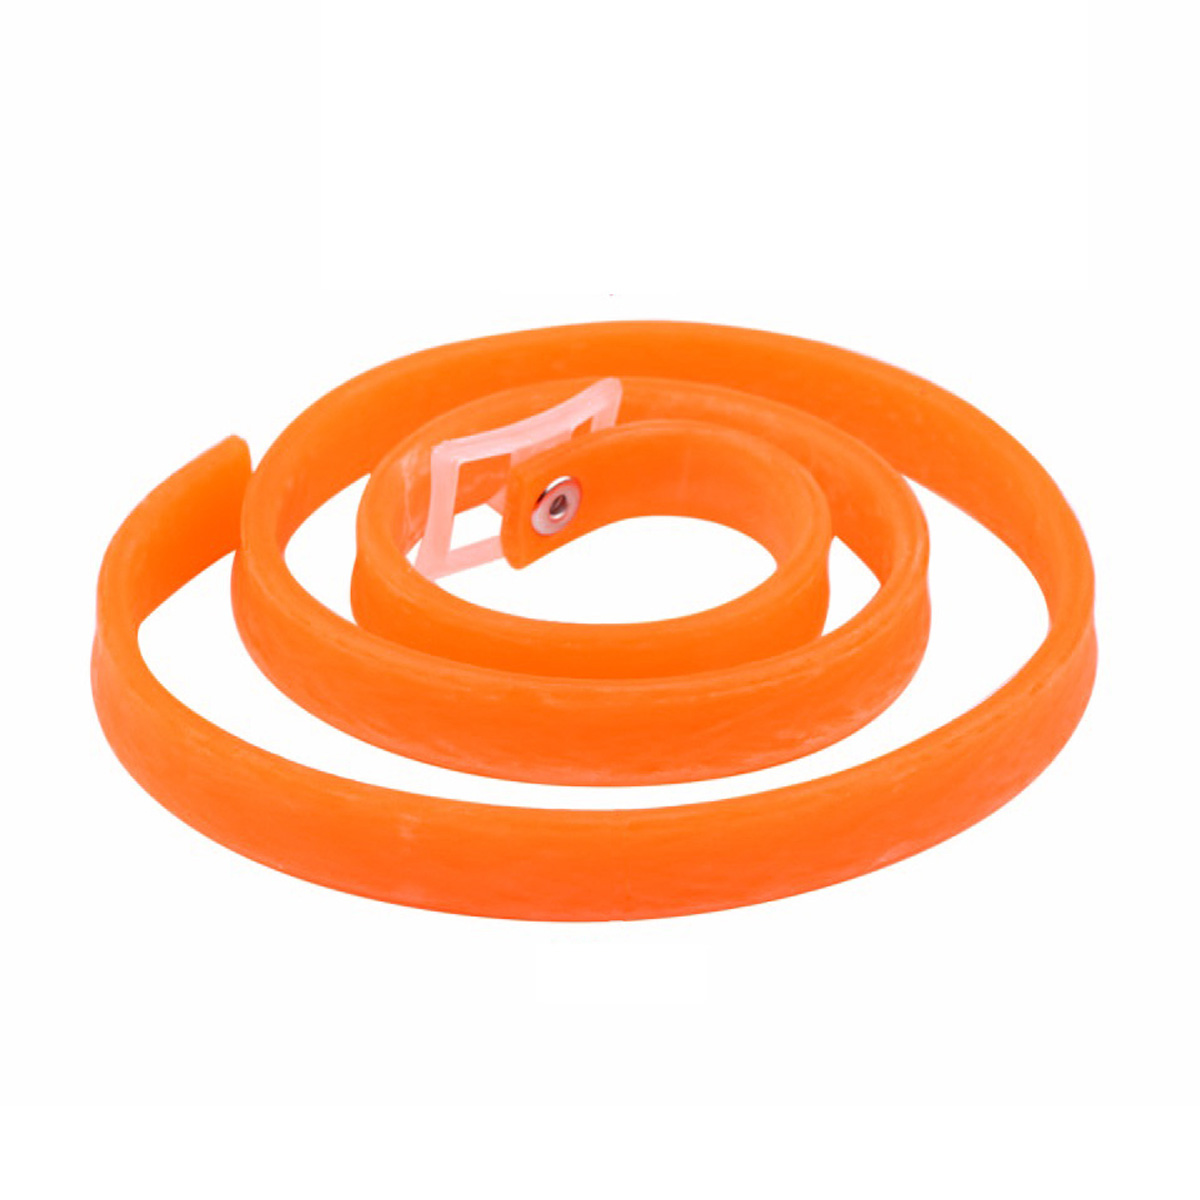 New Fruit Flavour Useful Protection Anti Mosquito Insect Biting Pet Flea Tick Collar Neck Strap